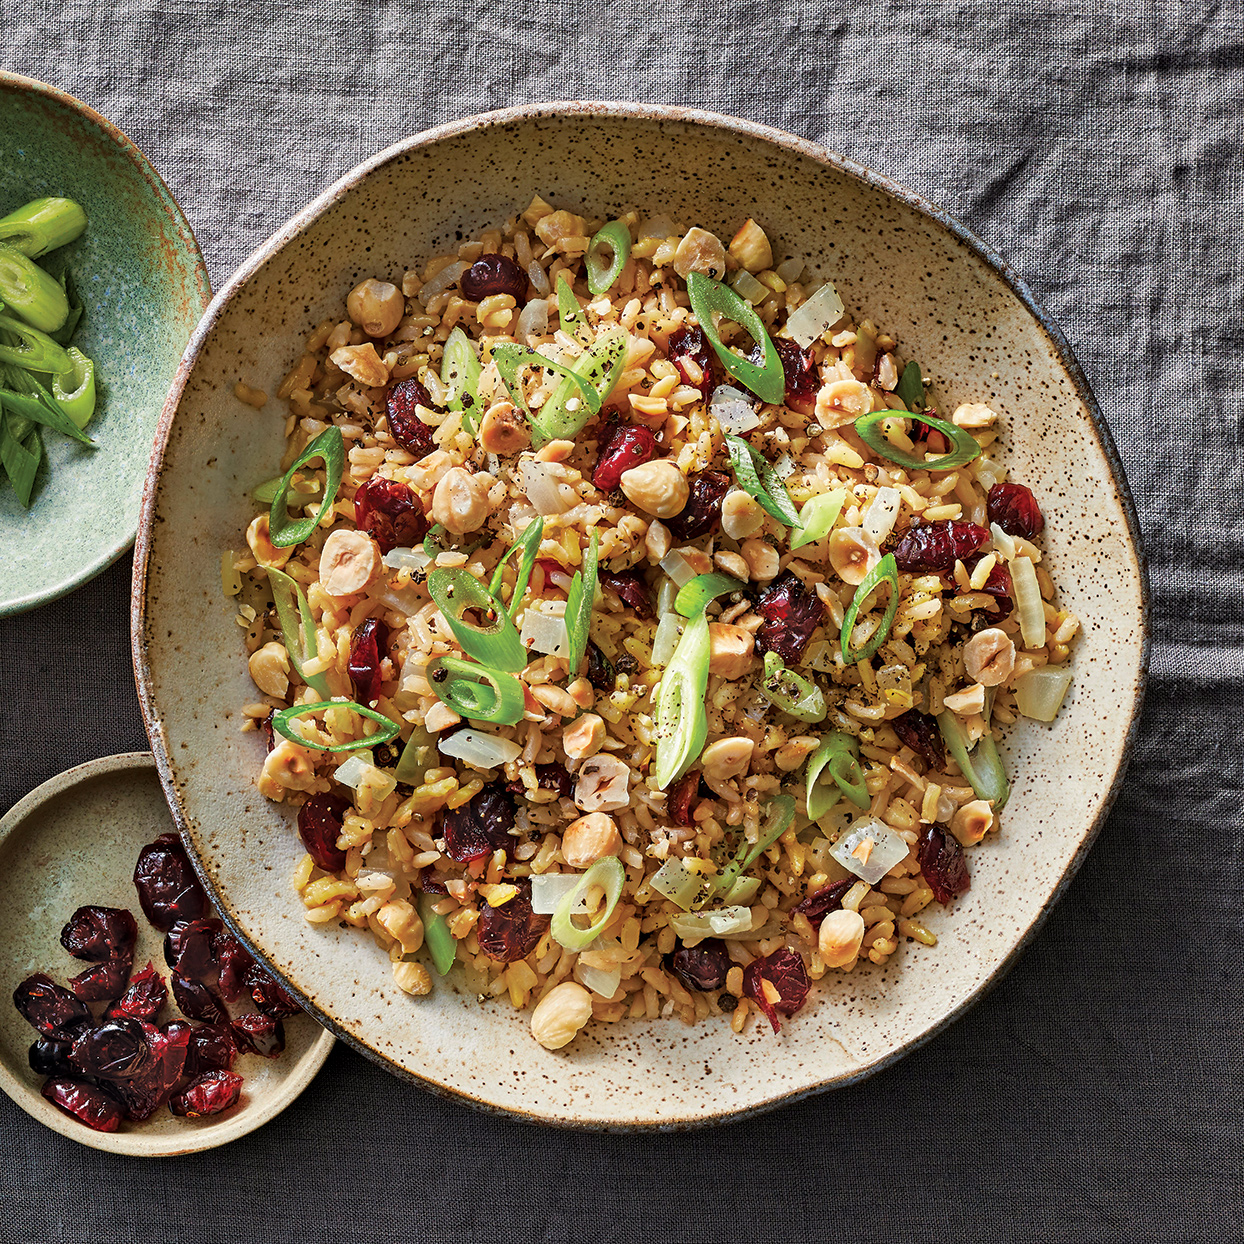 Slow-Cooker Brown Rice Pilaf with Cherries & Hazelnuts Trusted Brands